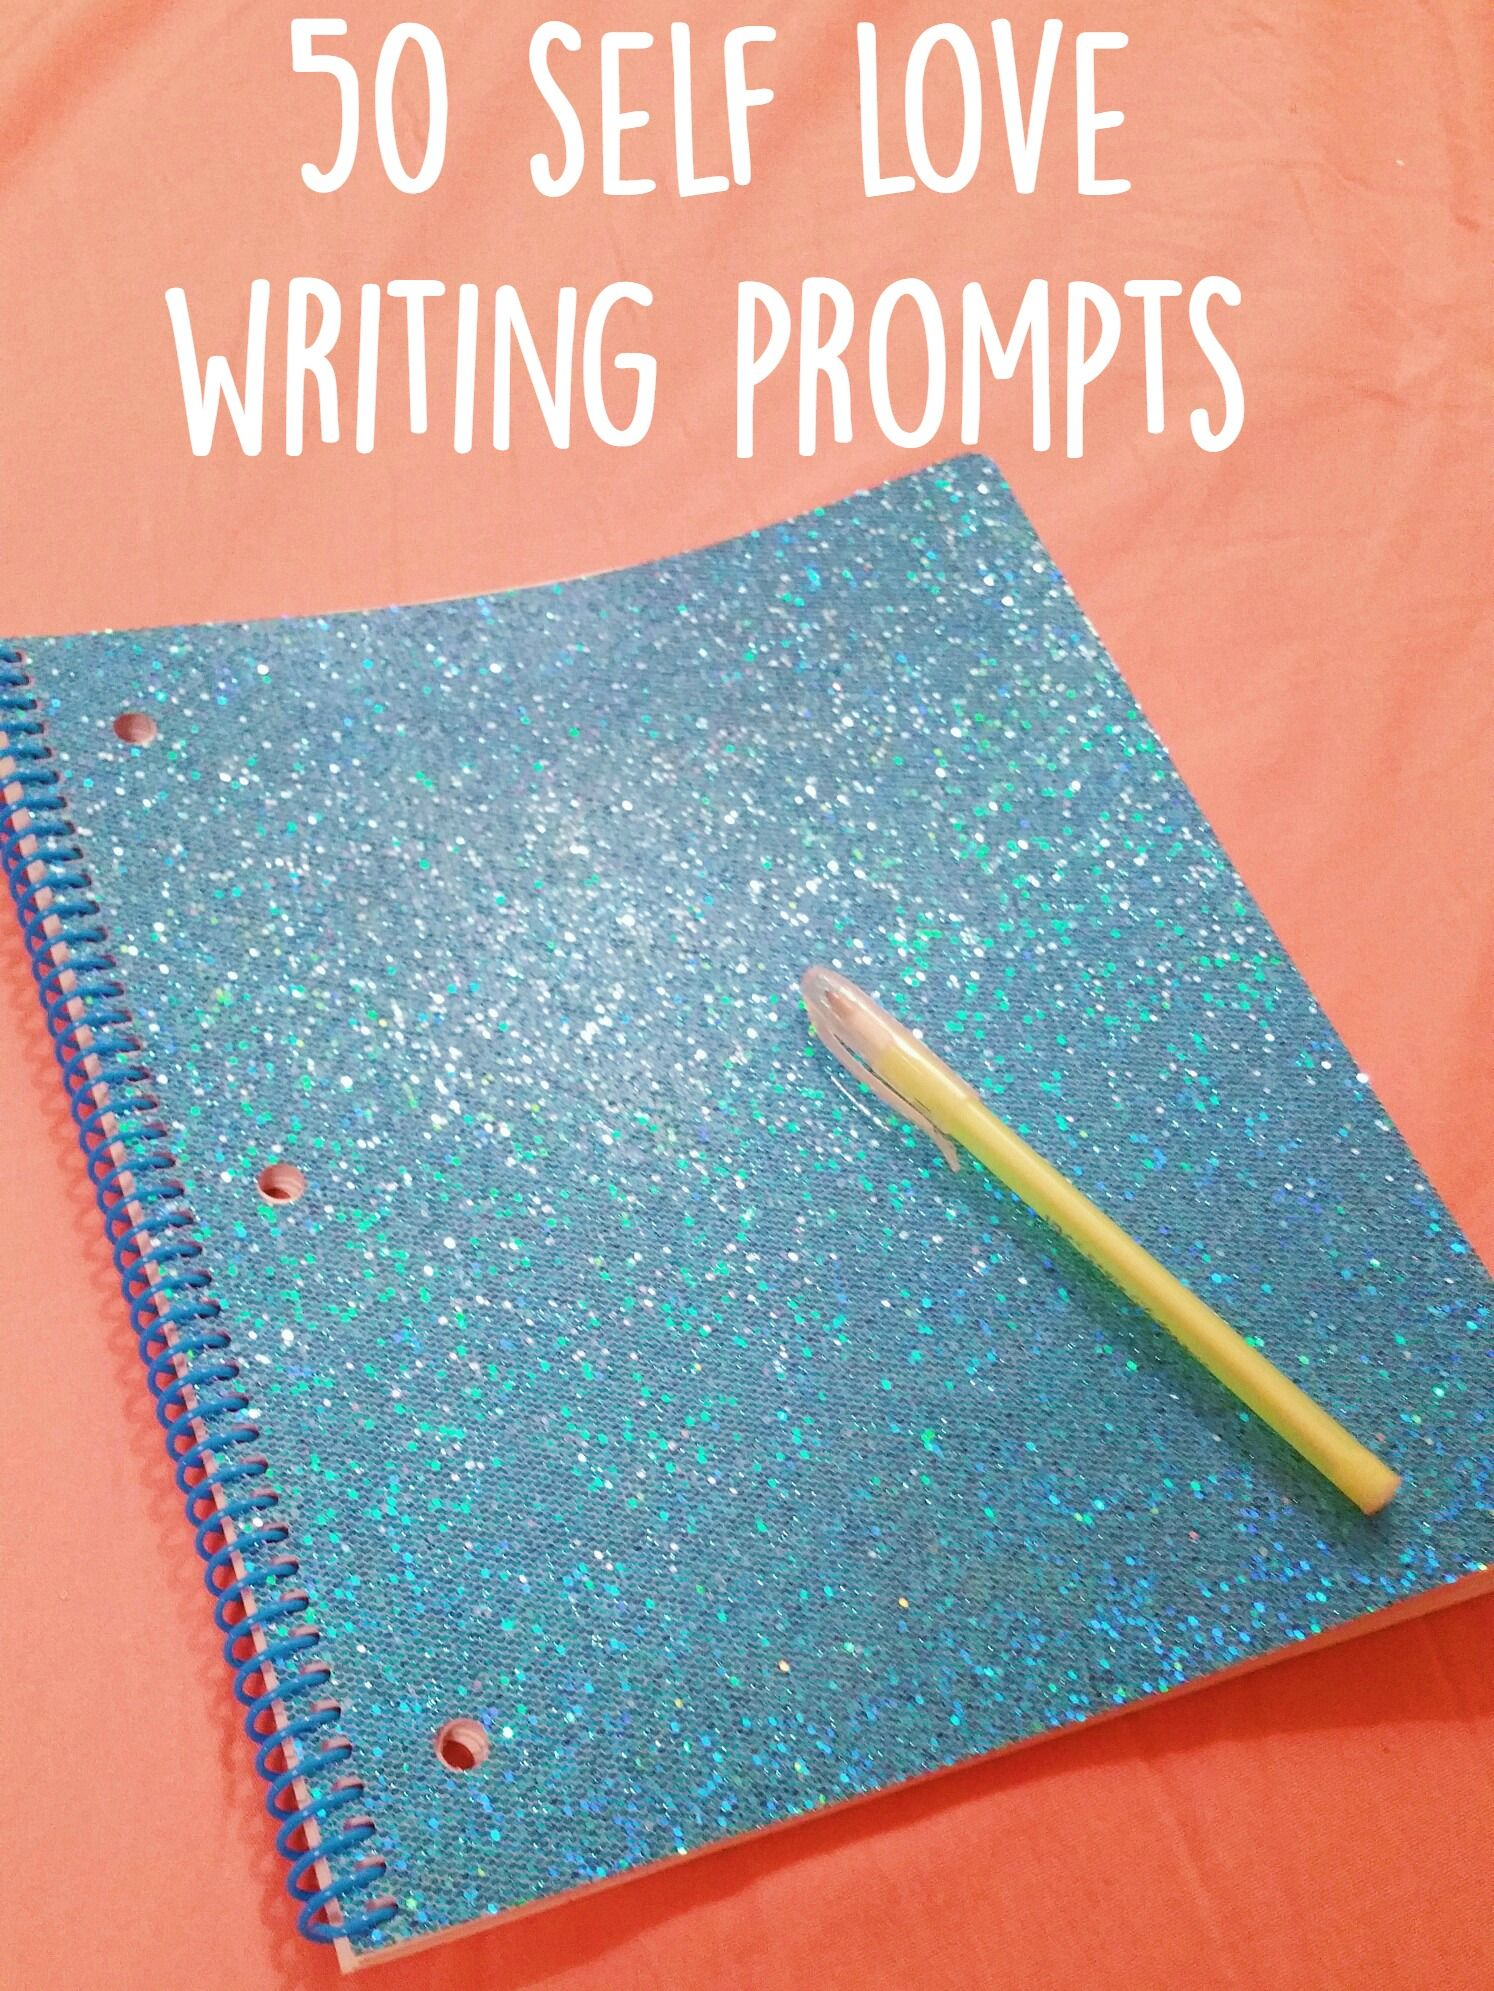 Online journal writing